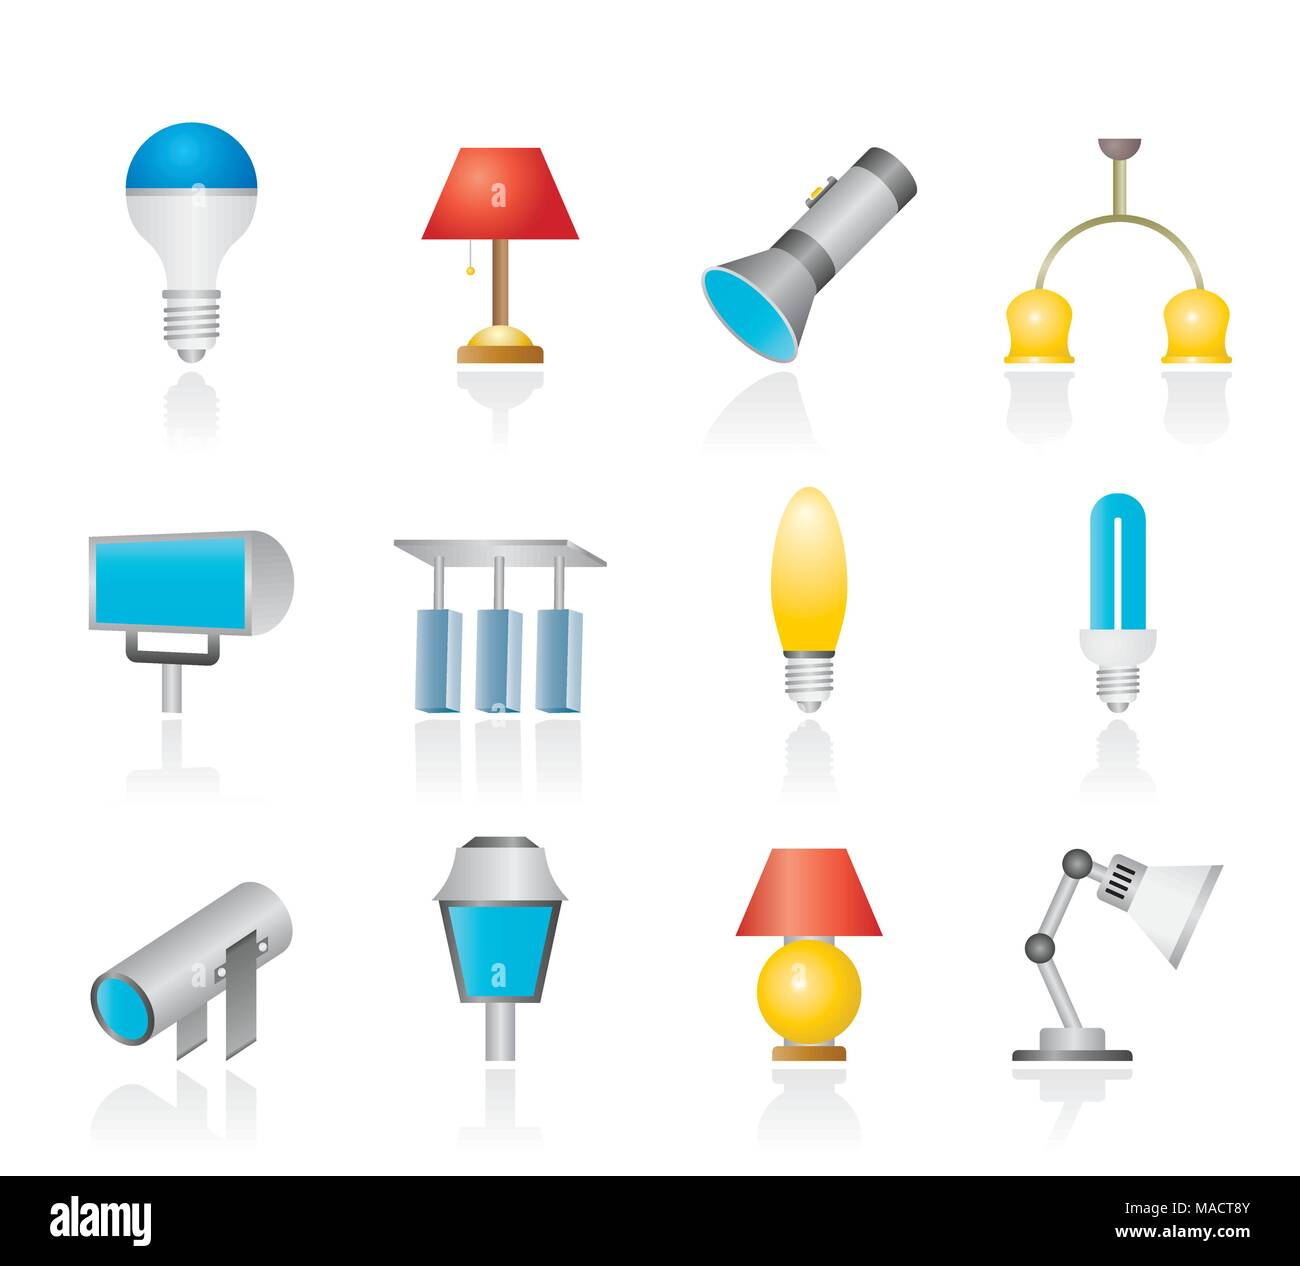 Clip Lighting Stock Photos Images Alamy Products Metal Related Searchesclapper Switch Clap Light Different Kind Of Equipment Vector Icon Set Image